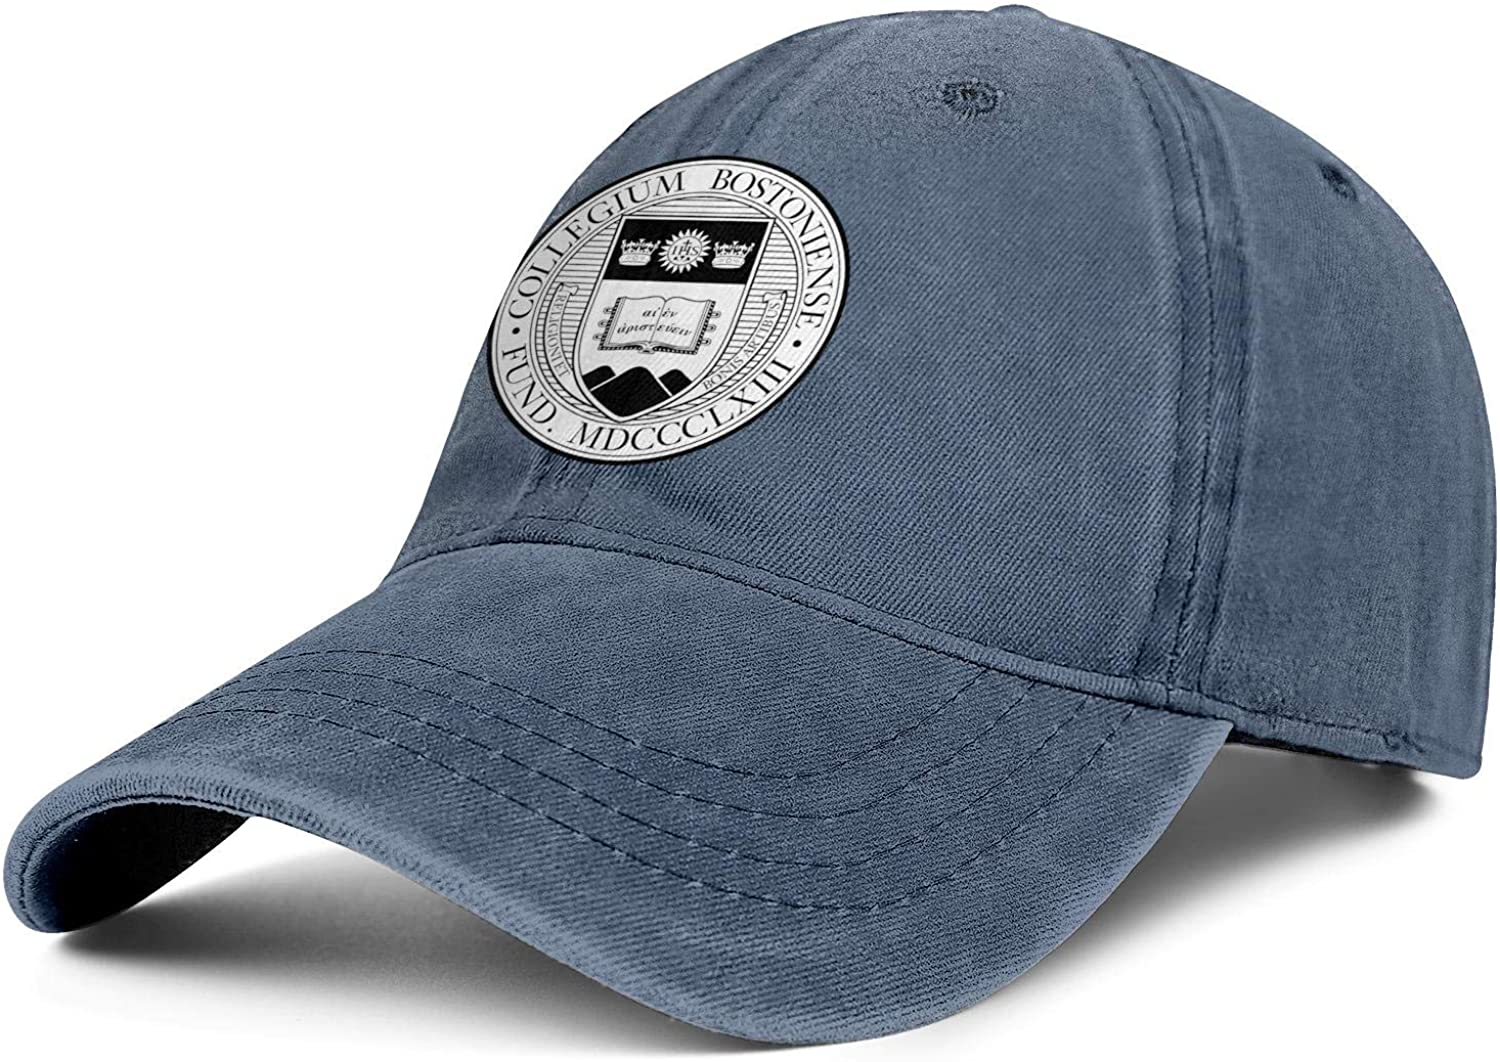 Trucker Hats TONGZIRT Fitted Jeans Dad Hats Cotton Mens Baseball Caps Unisex Boston-College-Logos